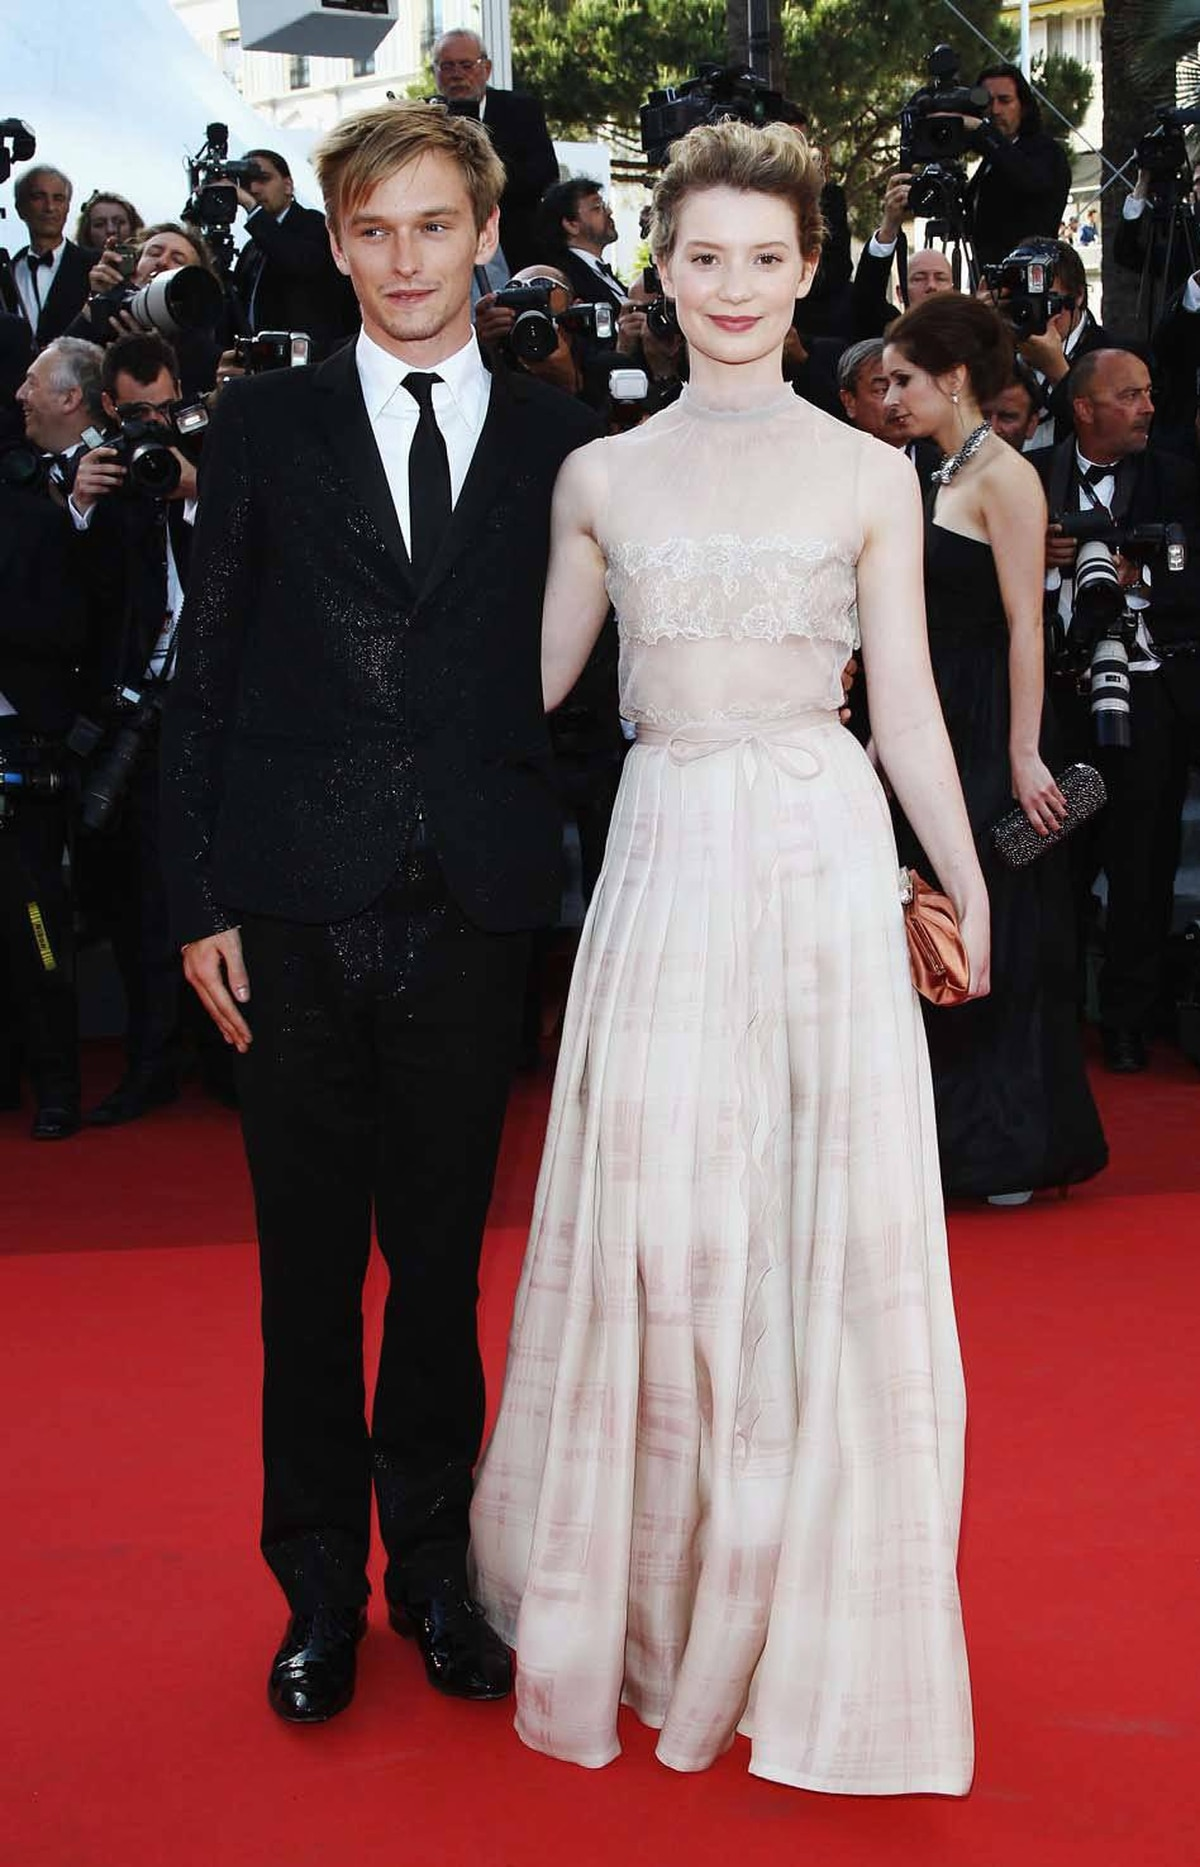 """Actors Henry Hopper and Mia Wasikowska attend """"The Tree Of Life"""" premiere at the Cannes Film Festival on Monday."""